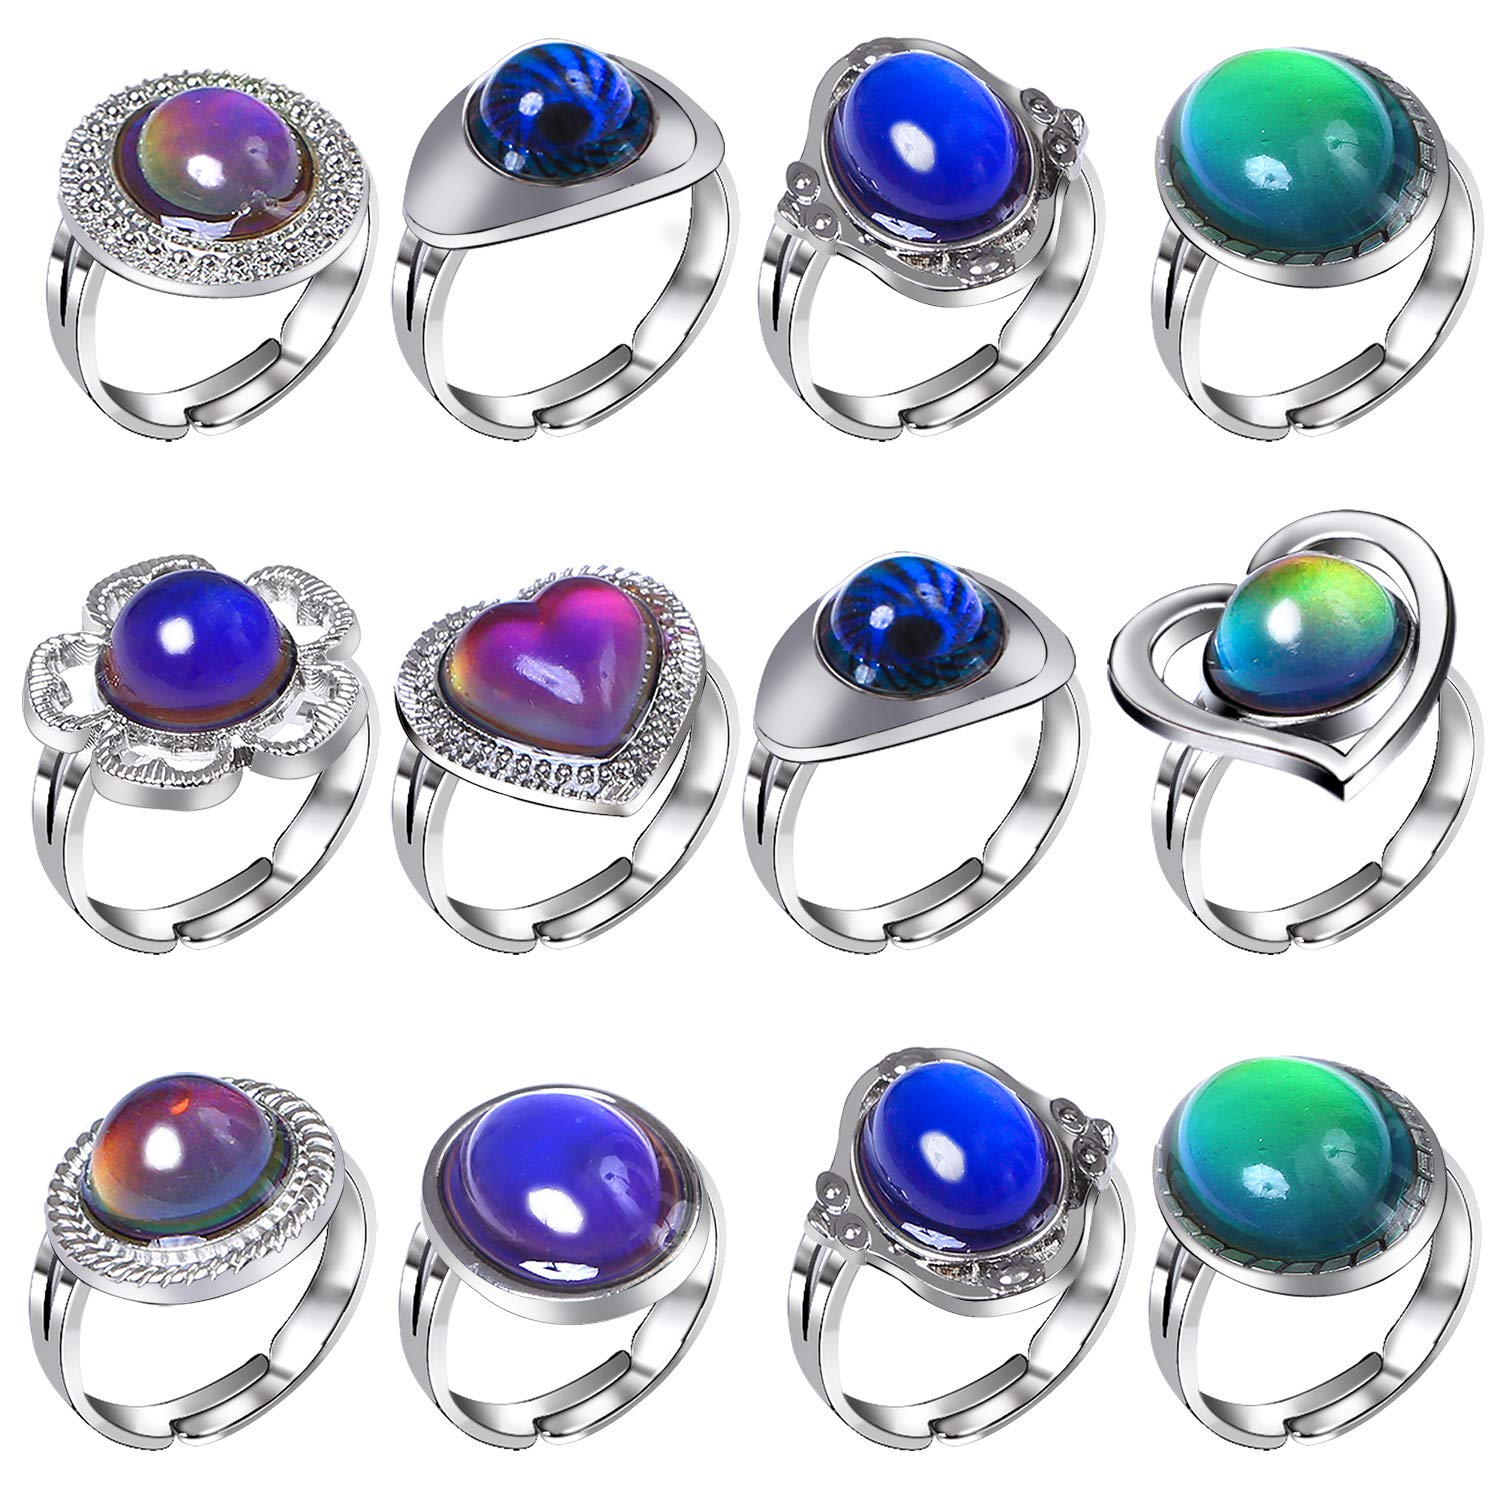 Aneco 12 Pieces Adjustable Mood Rings Color Changing Mood Rings for Girls and Boys Mixed Color for Halloween Costume Props Birthday Party Favors by Aneco